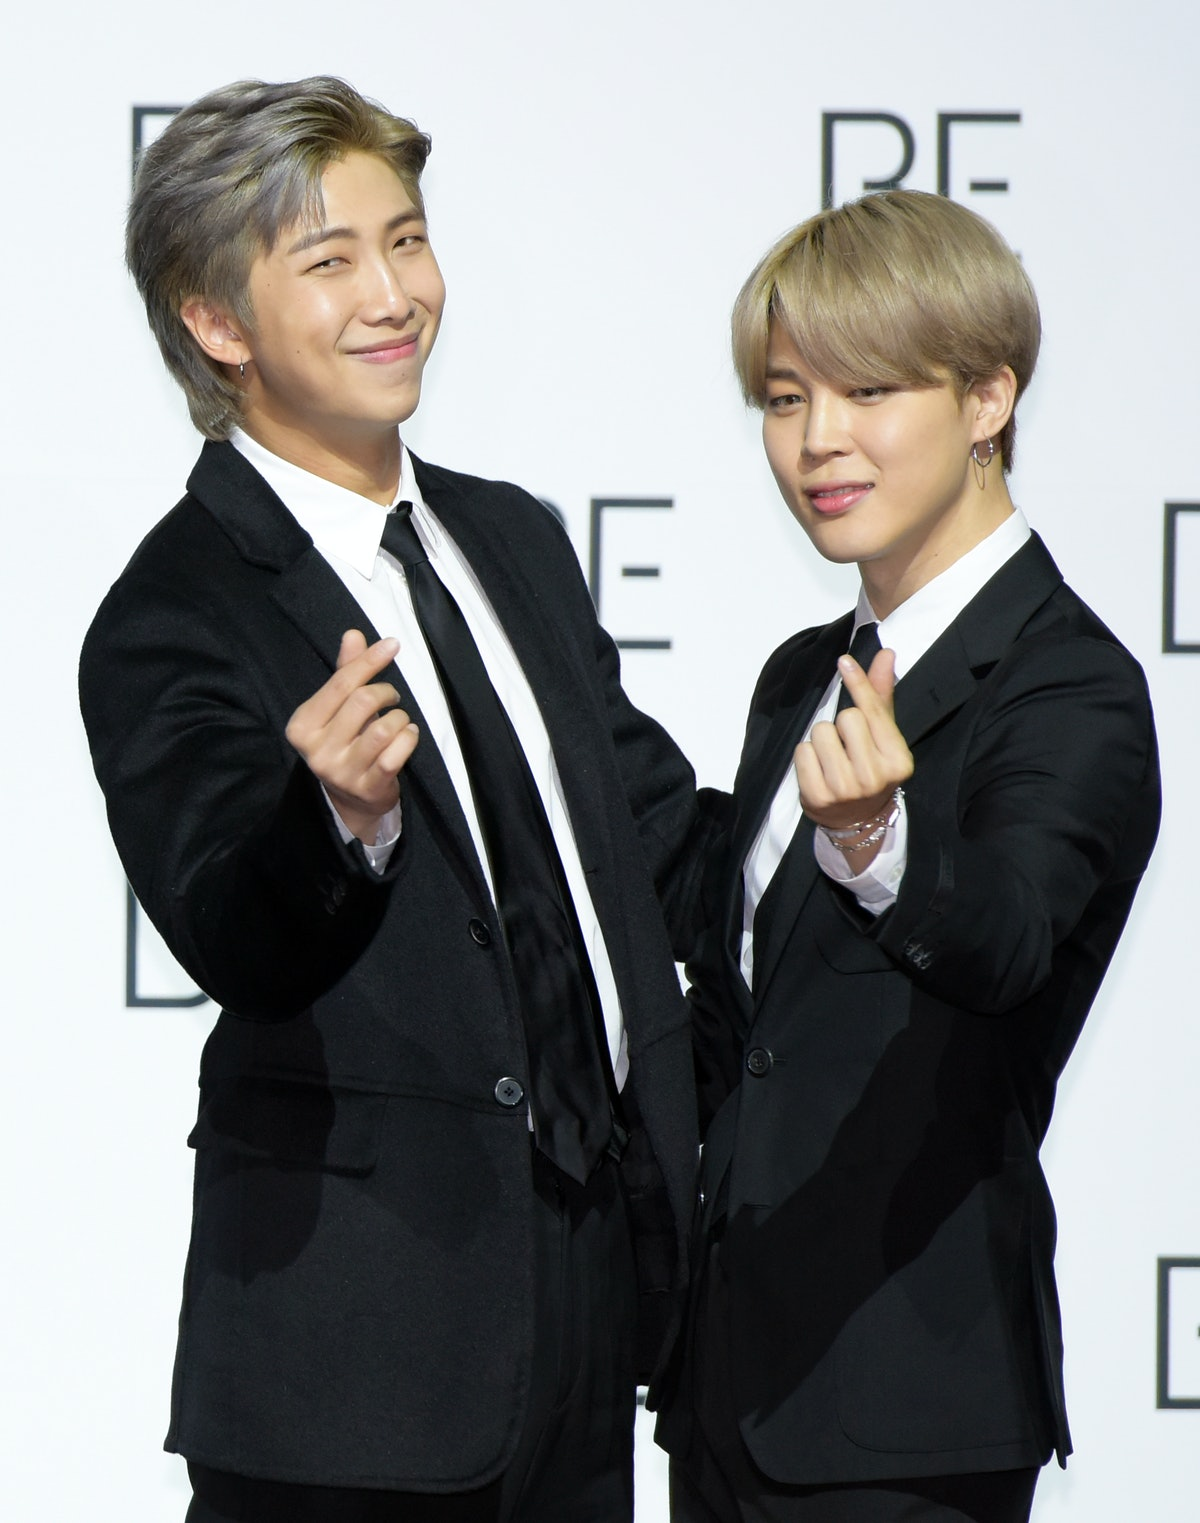 SEOUL, SOUTH KOREA - NOVEMBER 20: RM and Jimin of BTS during BTS's New Album 'BE (Deluxe Edition)' Release Press Conference at Dongdaemun Design Plaza on November 20, 2020 in Seoul, South Korea. (Photo by The Chosunilbo JNS/Imazins via Getty Images)